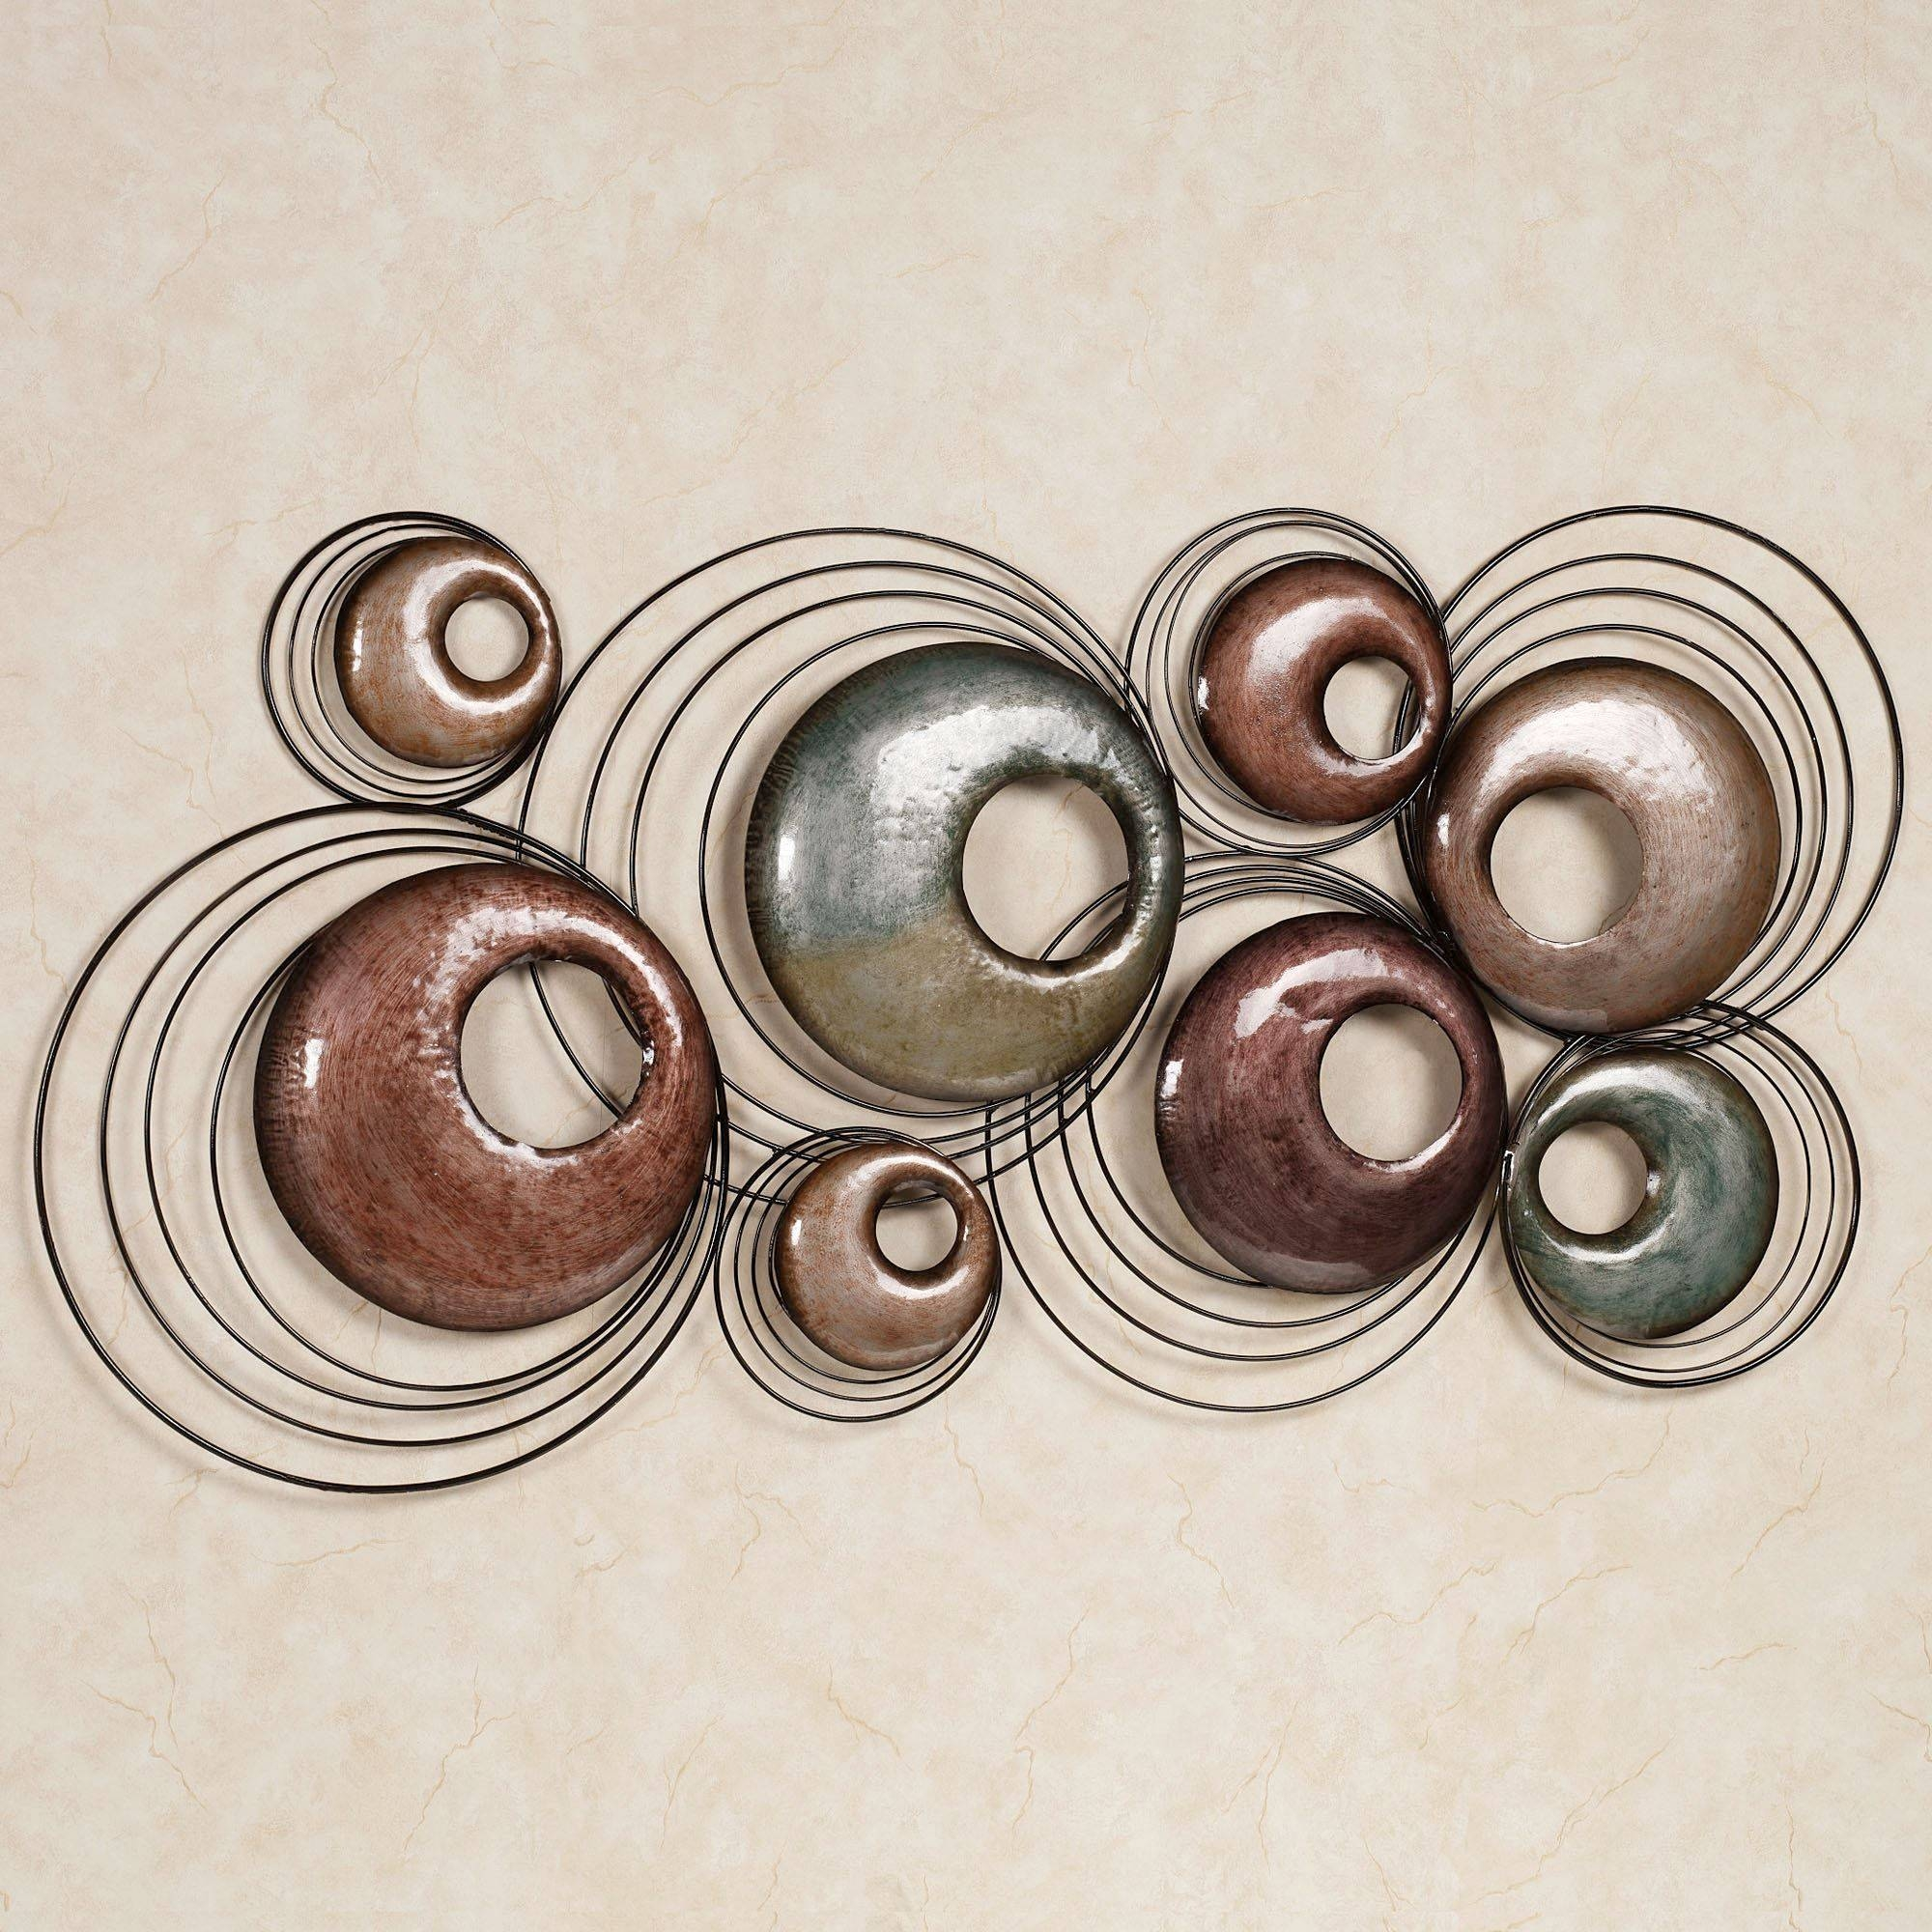 Echo Metal Wall Sculpture Art Intended For Current Circle Metal Wall Art (View 7 of 20)